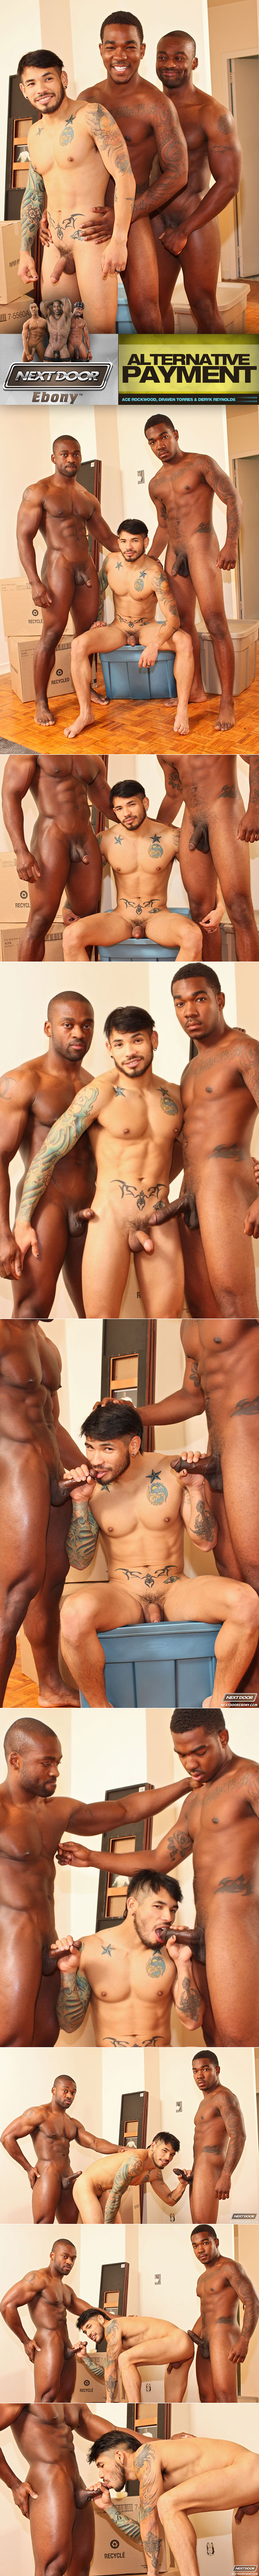 "NextDoorEbony: Draven Torres gets fucked by Derek Reynolds and Ace Rockwood in ""Alternative Payment"""